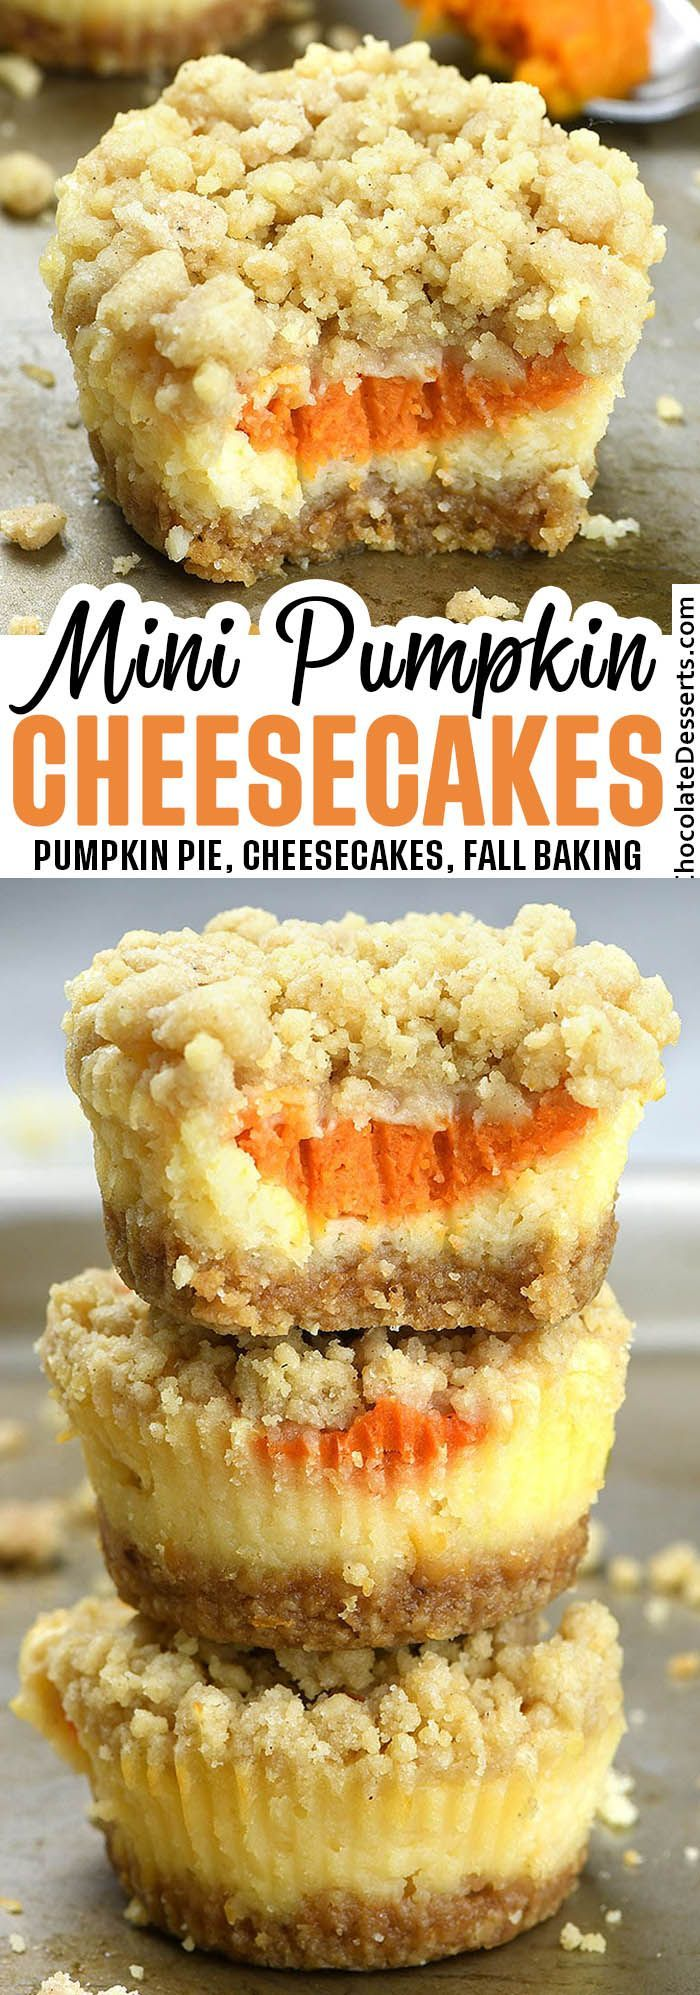 Mini Pumpkin Cheesecakes with Streusel Topping -   18 thanksgiving desserts for a crowd ideas